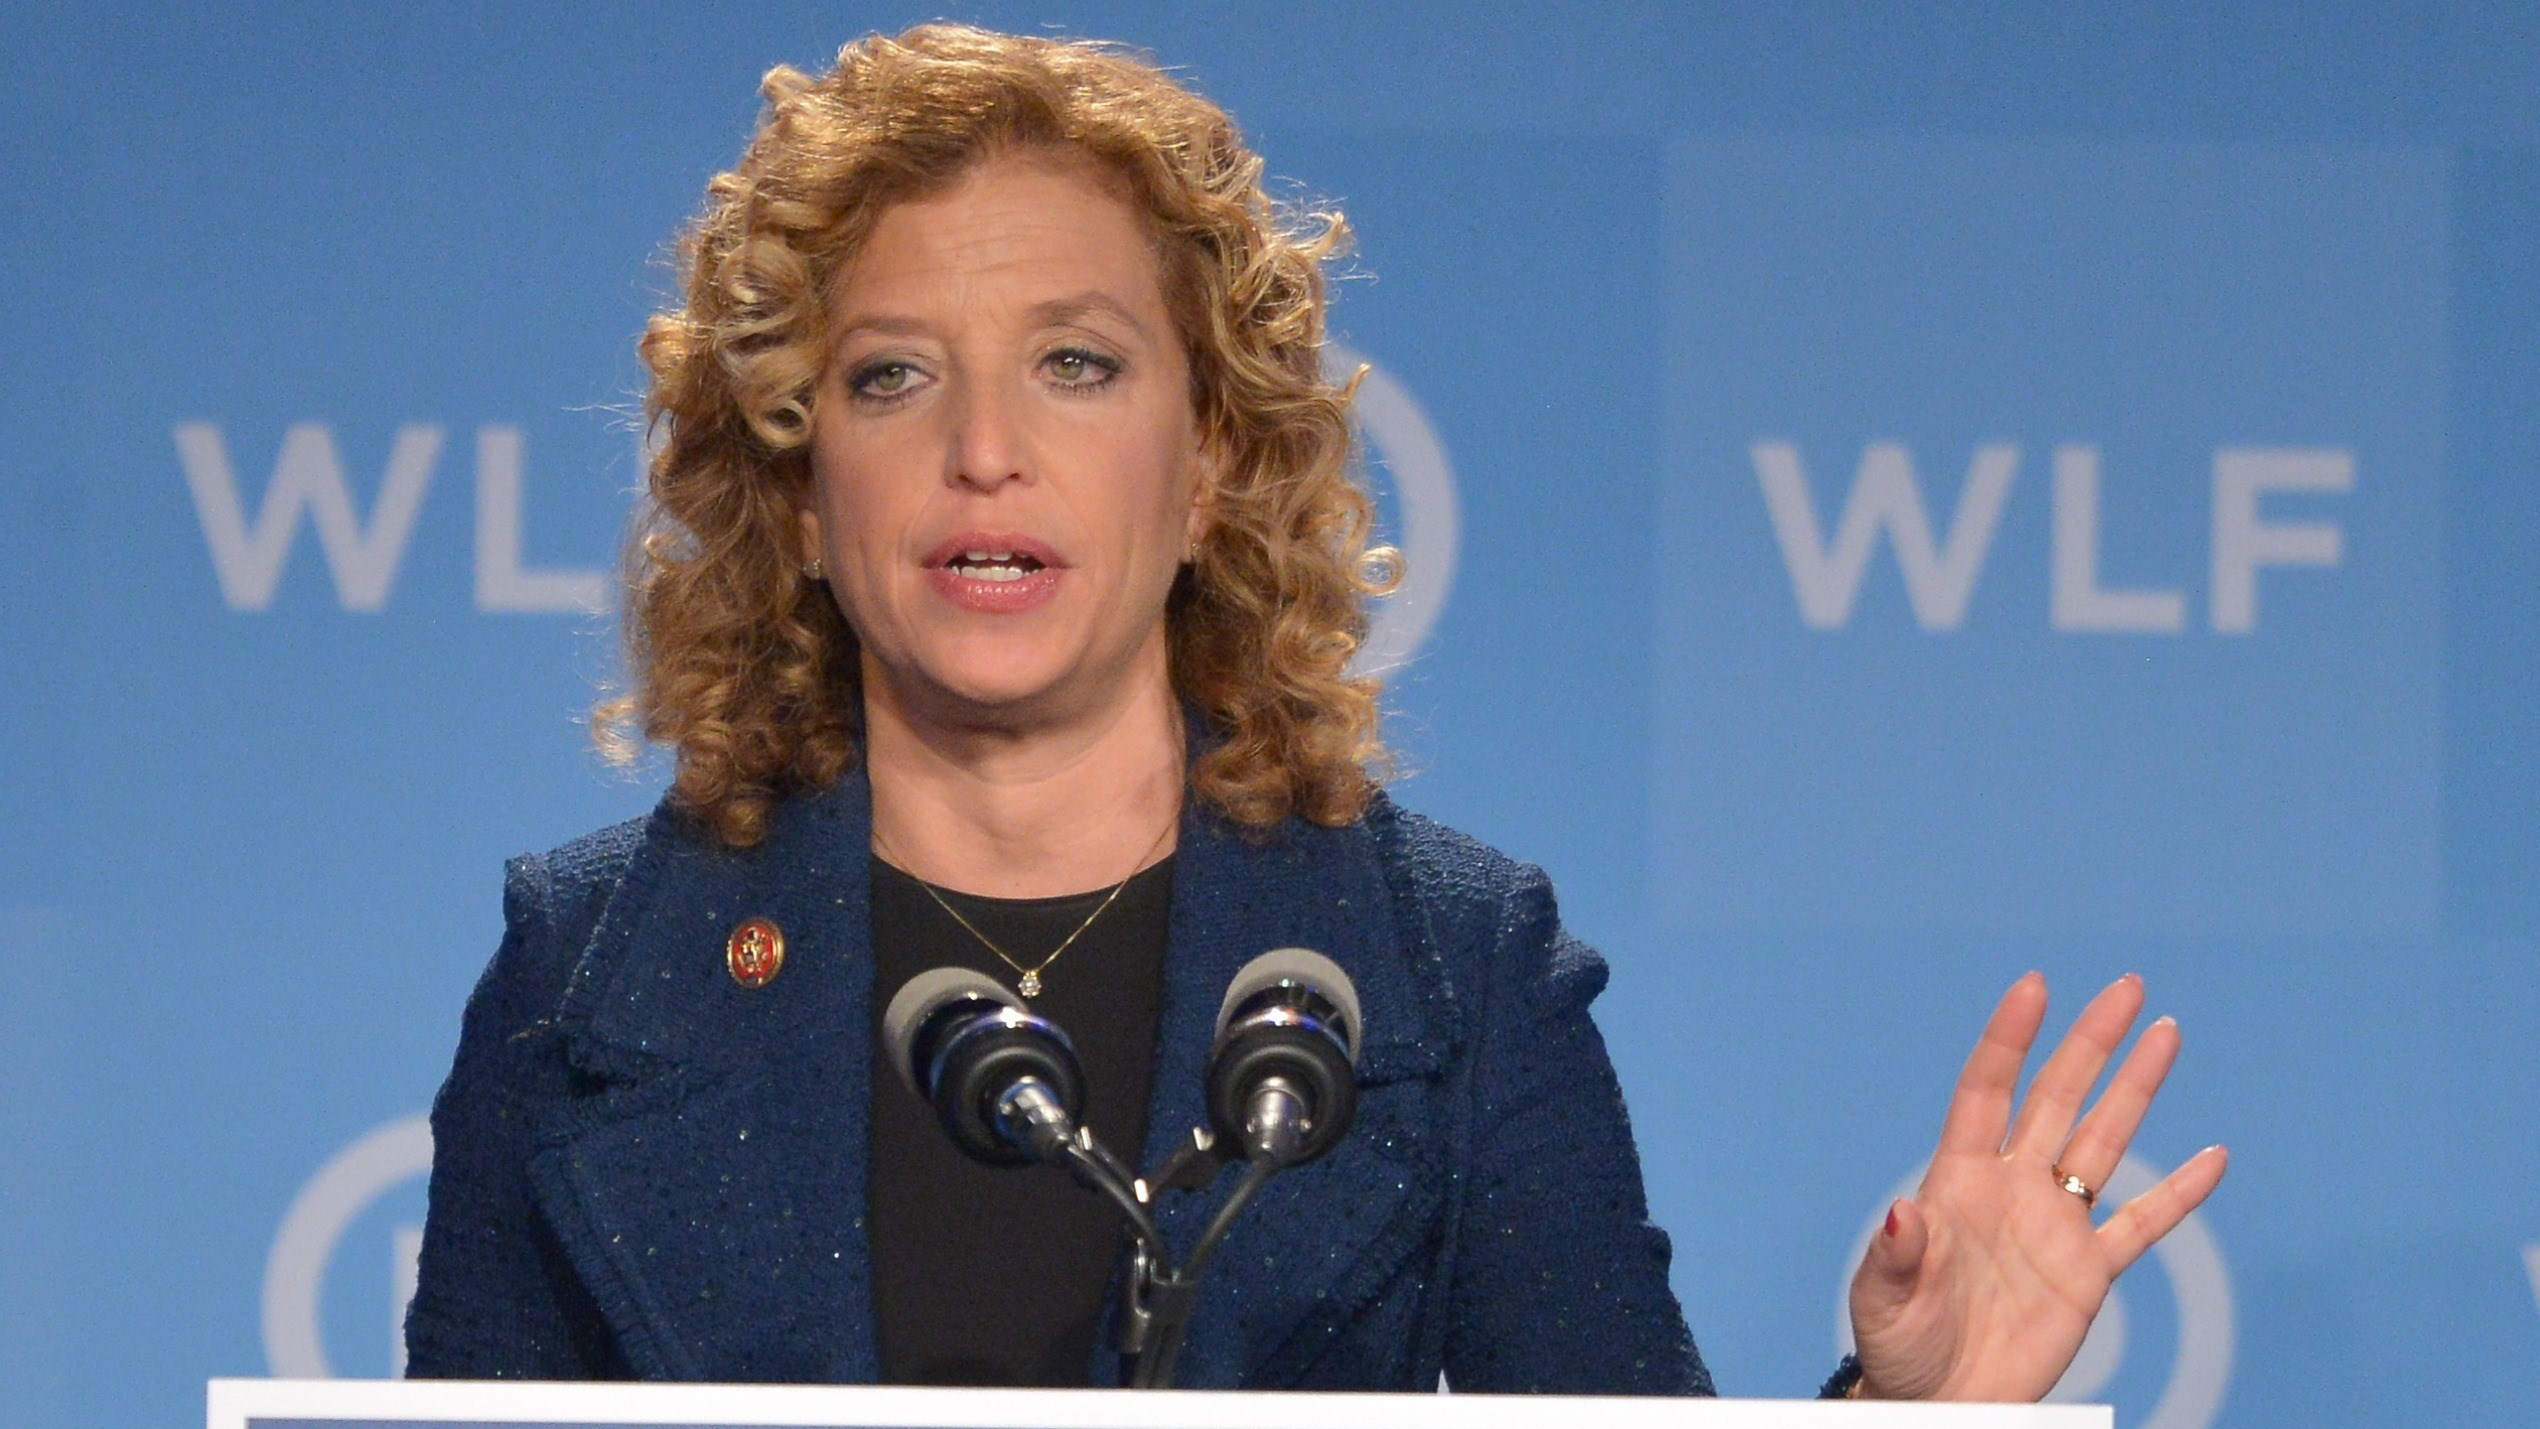 Democratic National Committee Chairwoman Debbie Wasserman Schultz said the DNC is working to secure its network as quickly as possible. She's shown here in 2014. Mandel Ngan/AFP/Getty Images